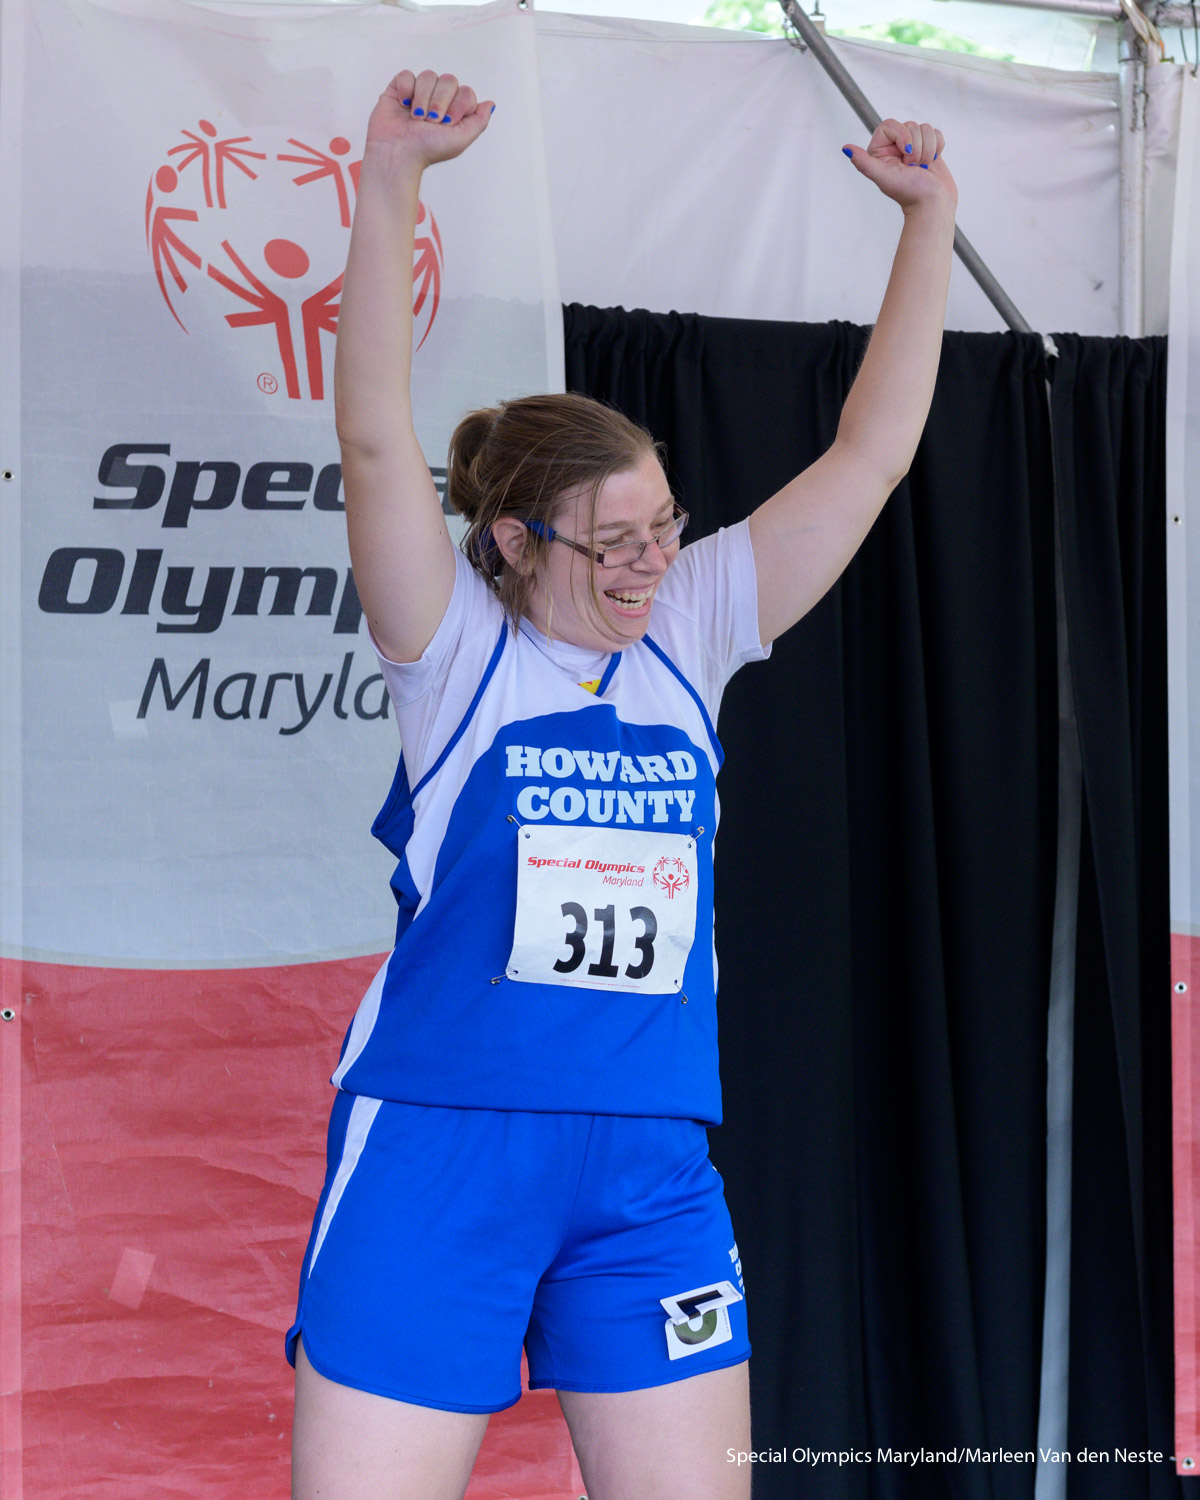 A very happy athlete in the Awards tent at Unitas Stadium, Towson University, MD. on Sunday, June 9, 2019.